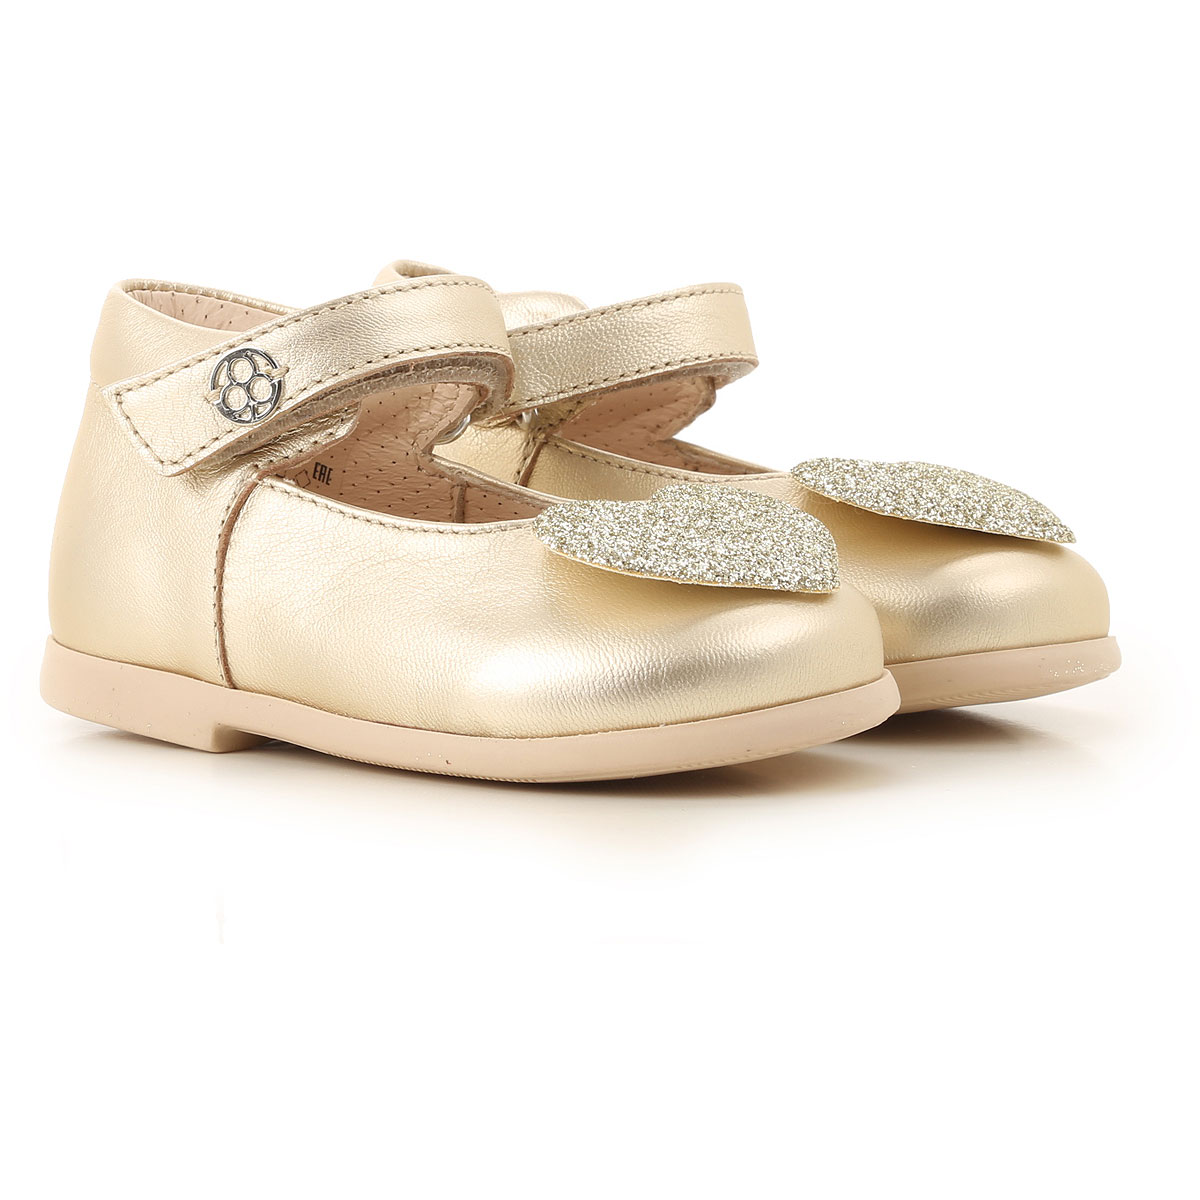 Florens Kids Shoes for Girls On Sale, Gold, Leather, 2019, 18 19 20 21 22 23 24